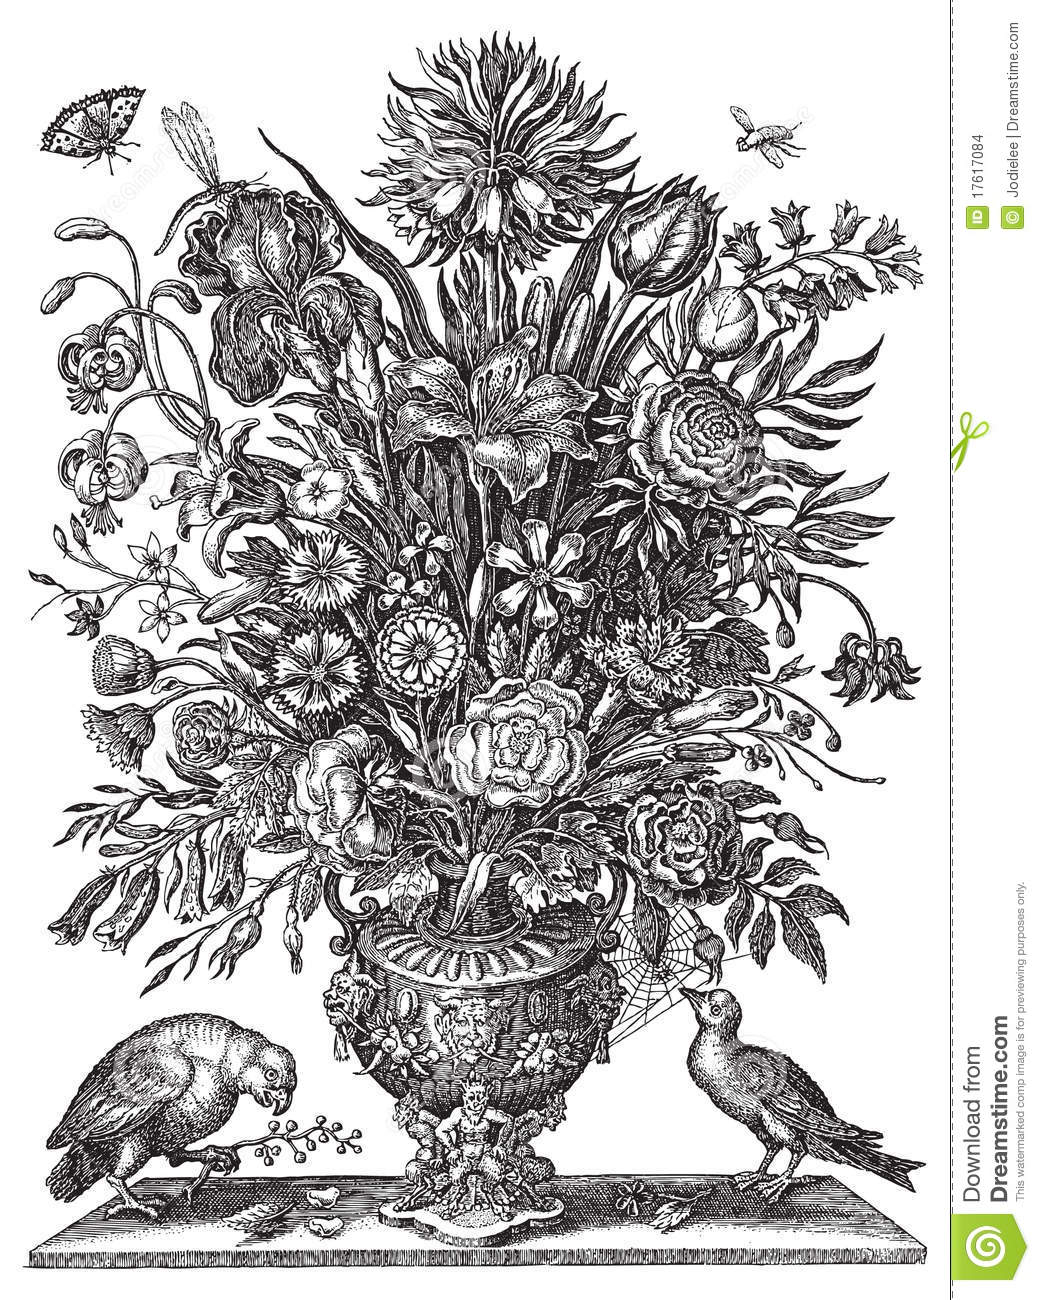 Clip Art Bouquet Of Flowers Black And White Images & Pictures - Becuo